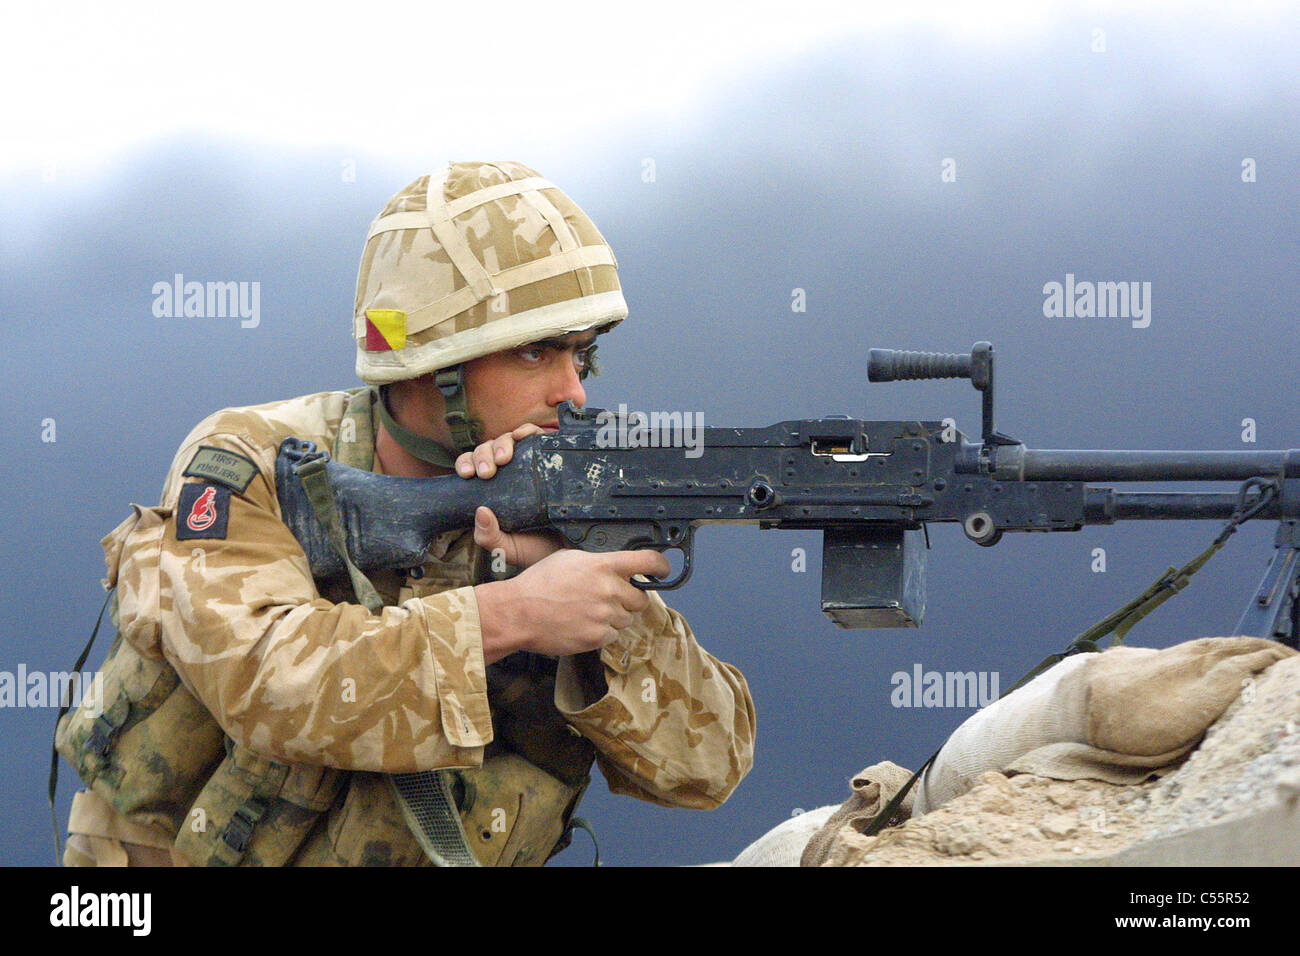 A British Army sniper on the lookout - Stock Image